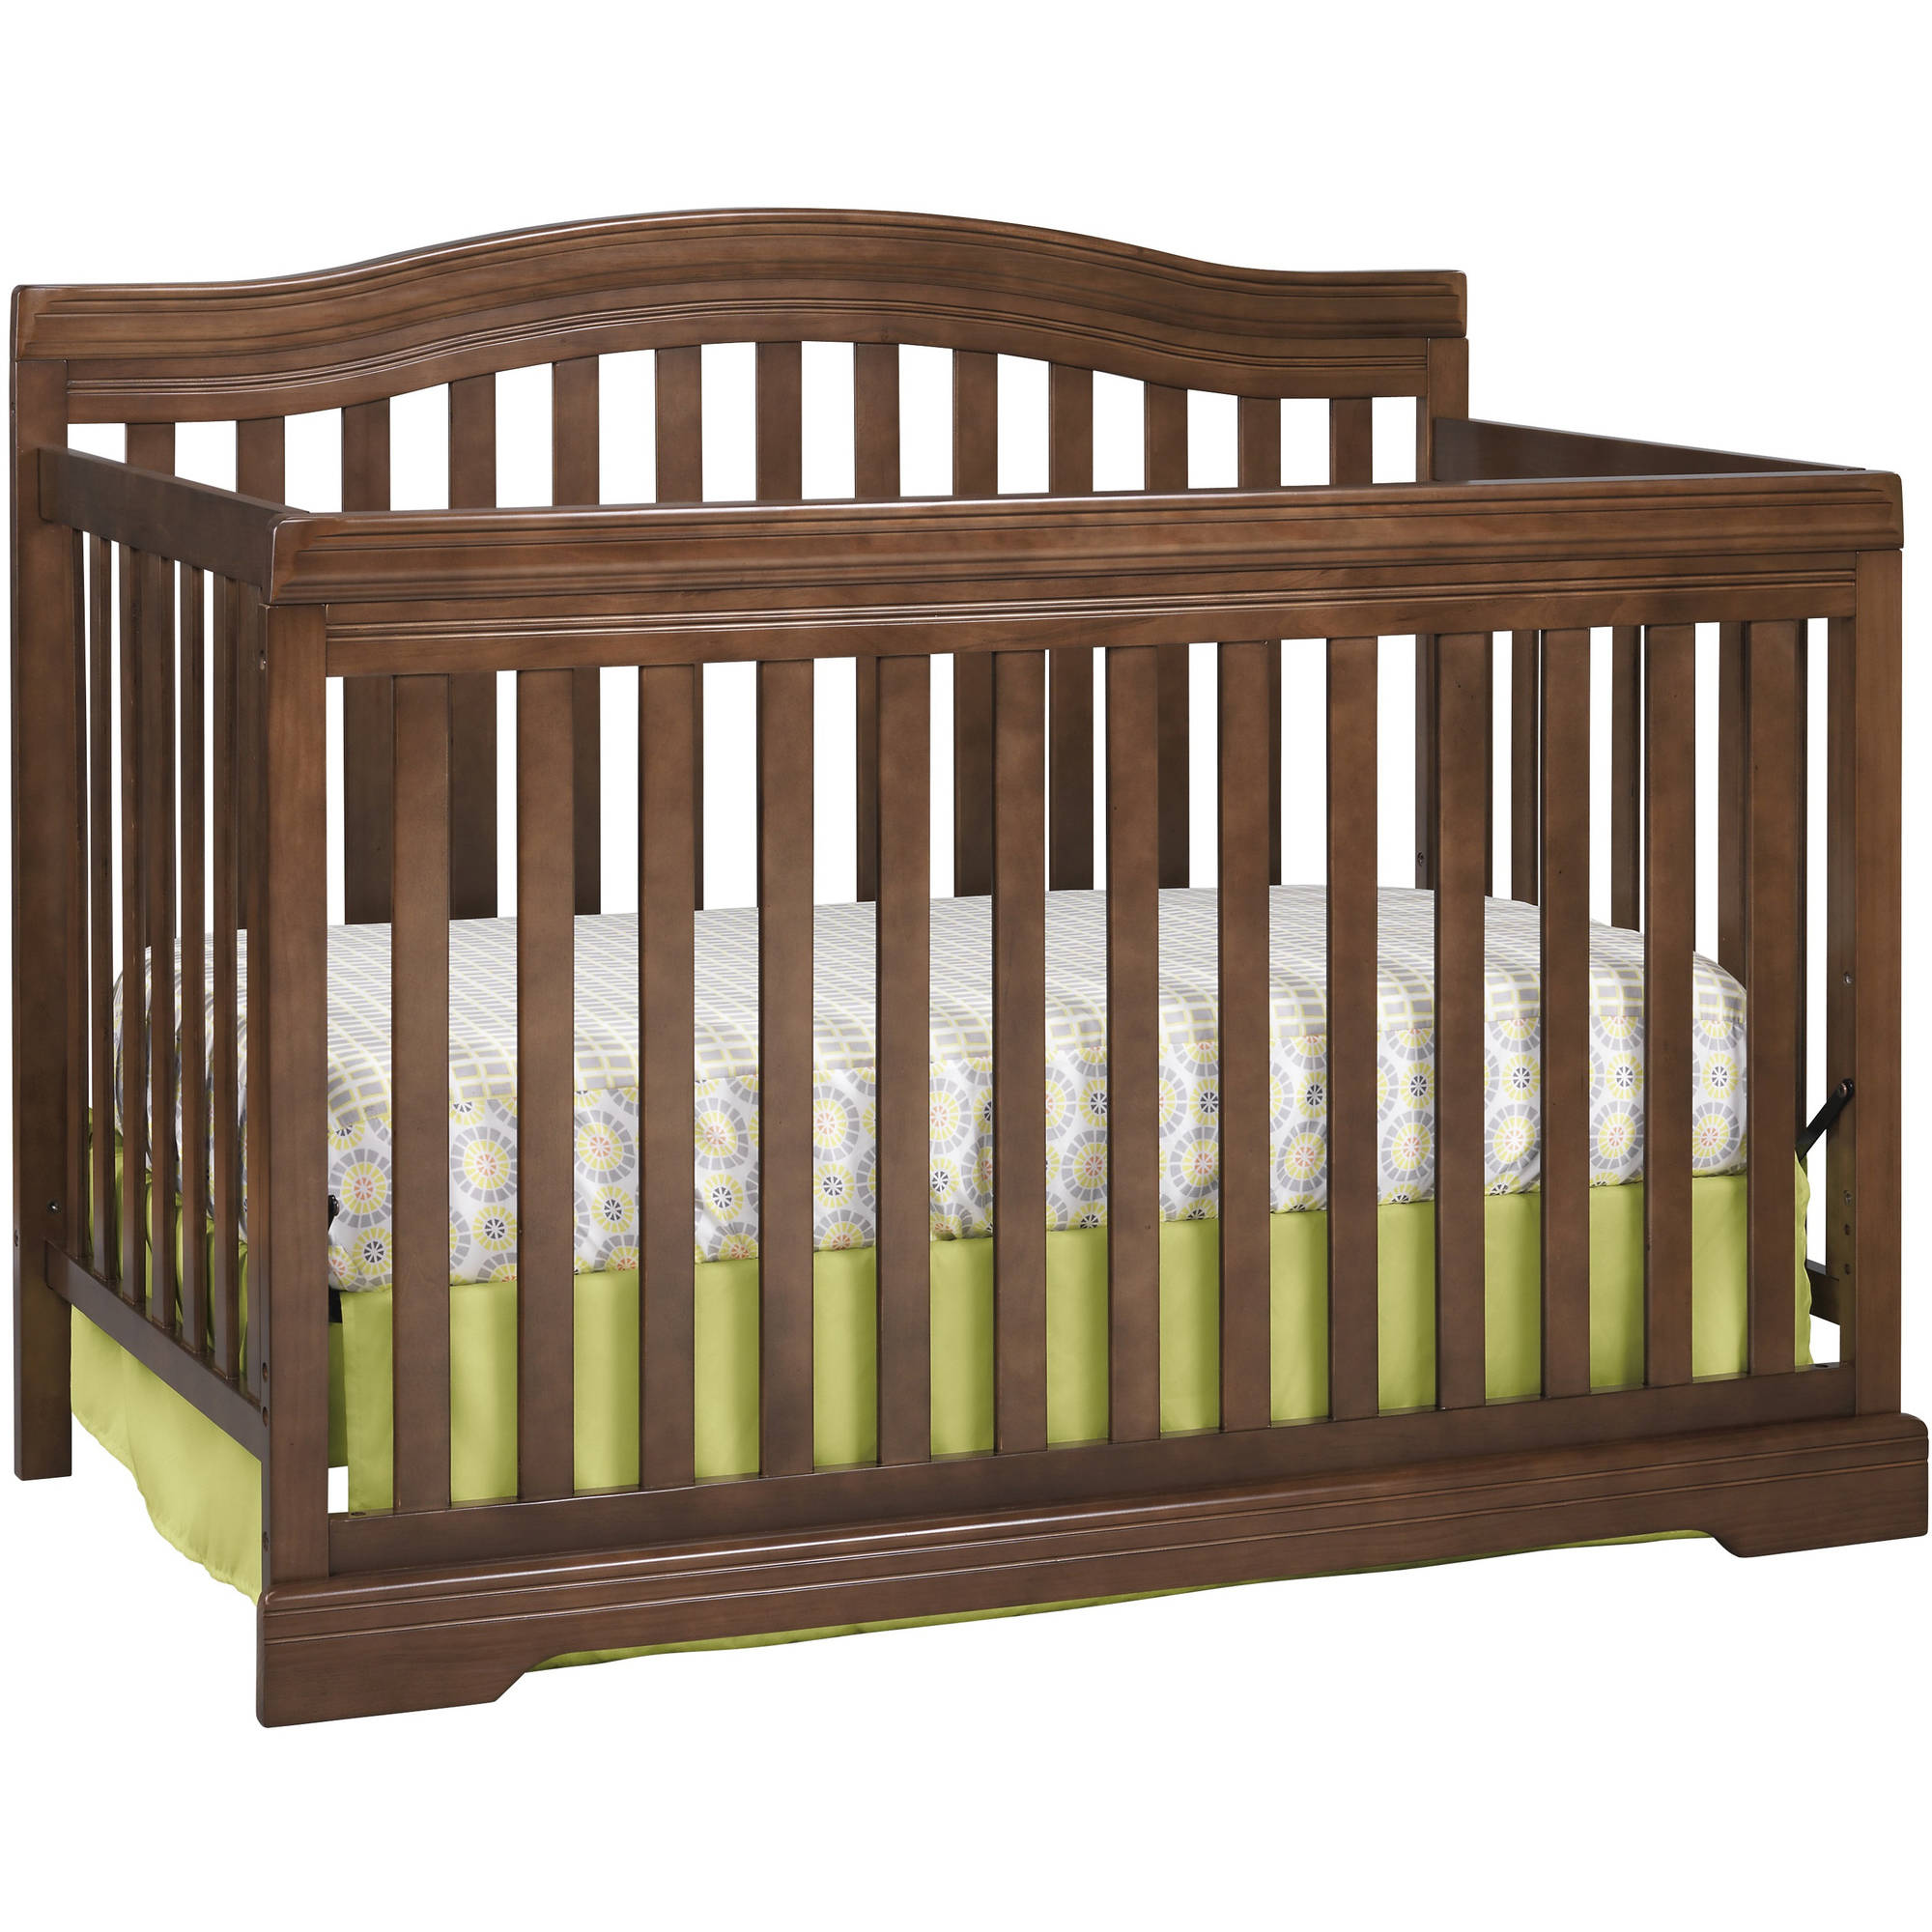 Broyhill Kids Bowen Heights 4-in-1 Convertible Fixed-Side Crib, Walnut